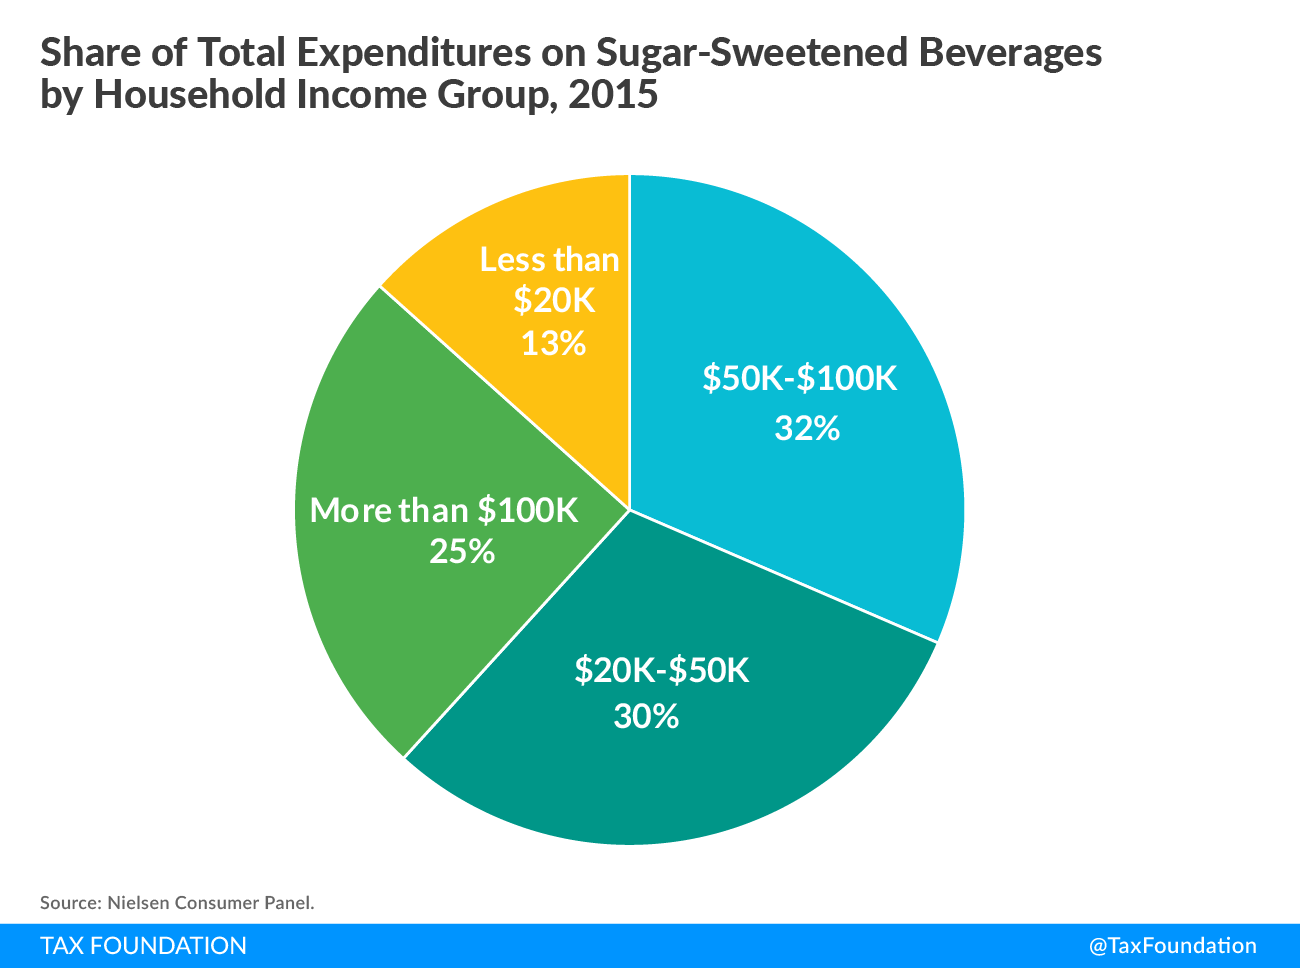 Share of Total Expenditures on Sugar-Sweetened Beverages by Household Income Group Pie Chart